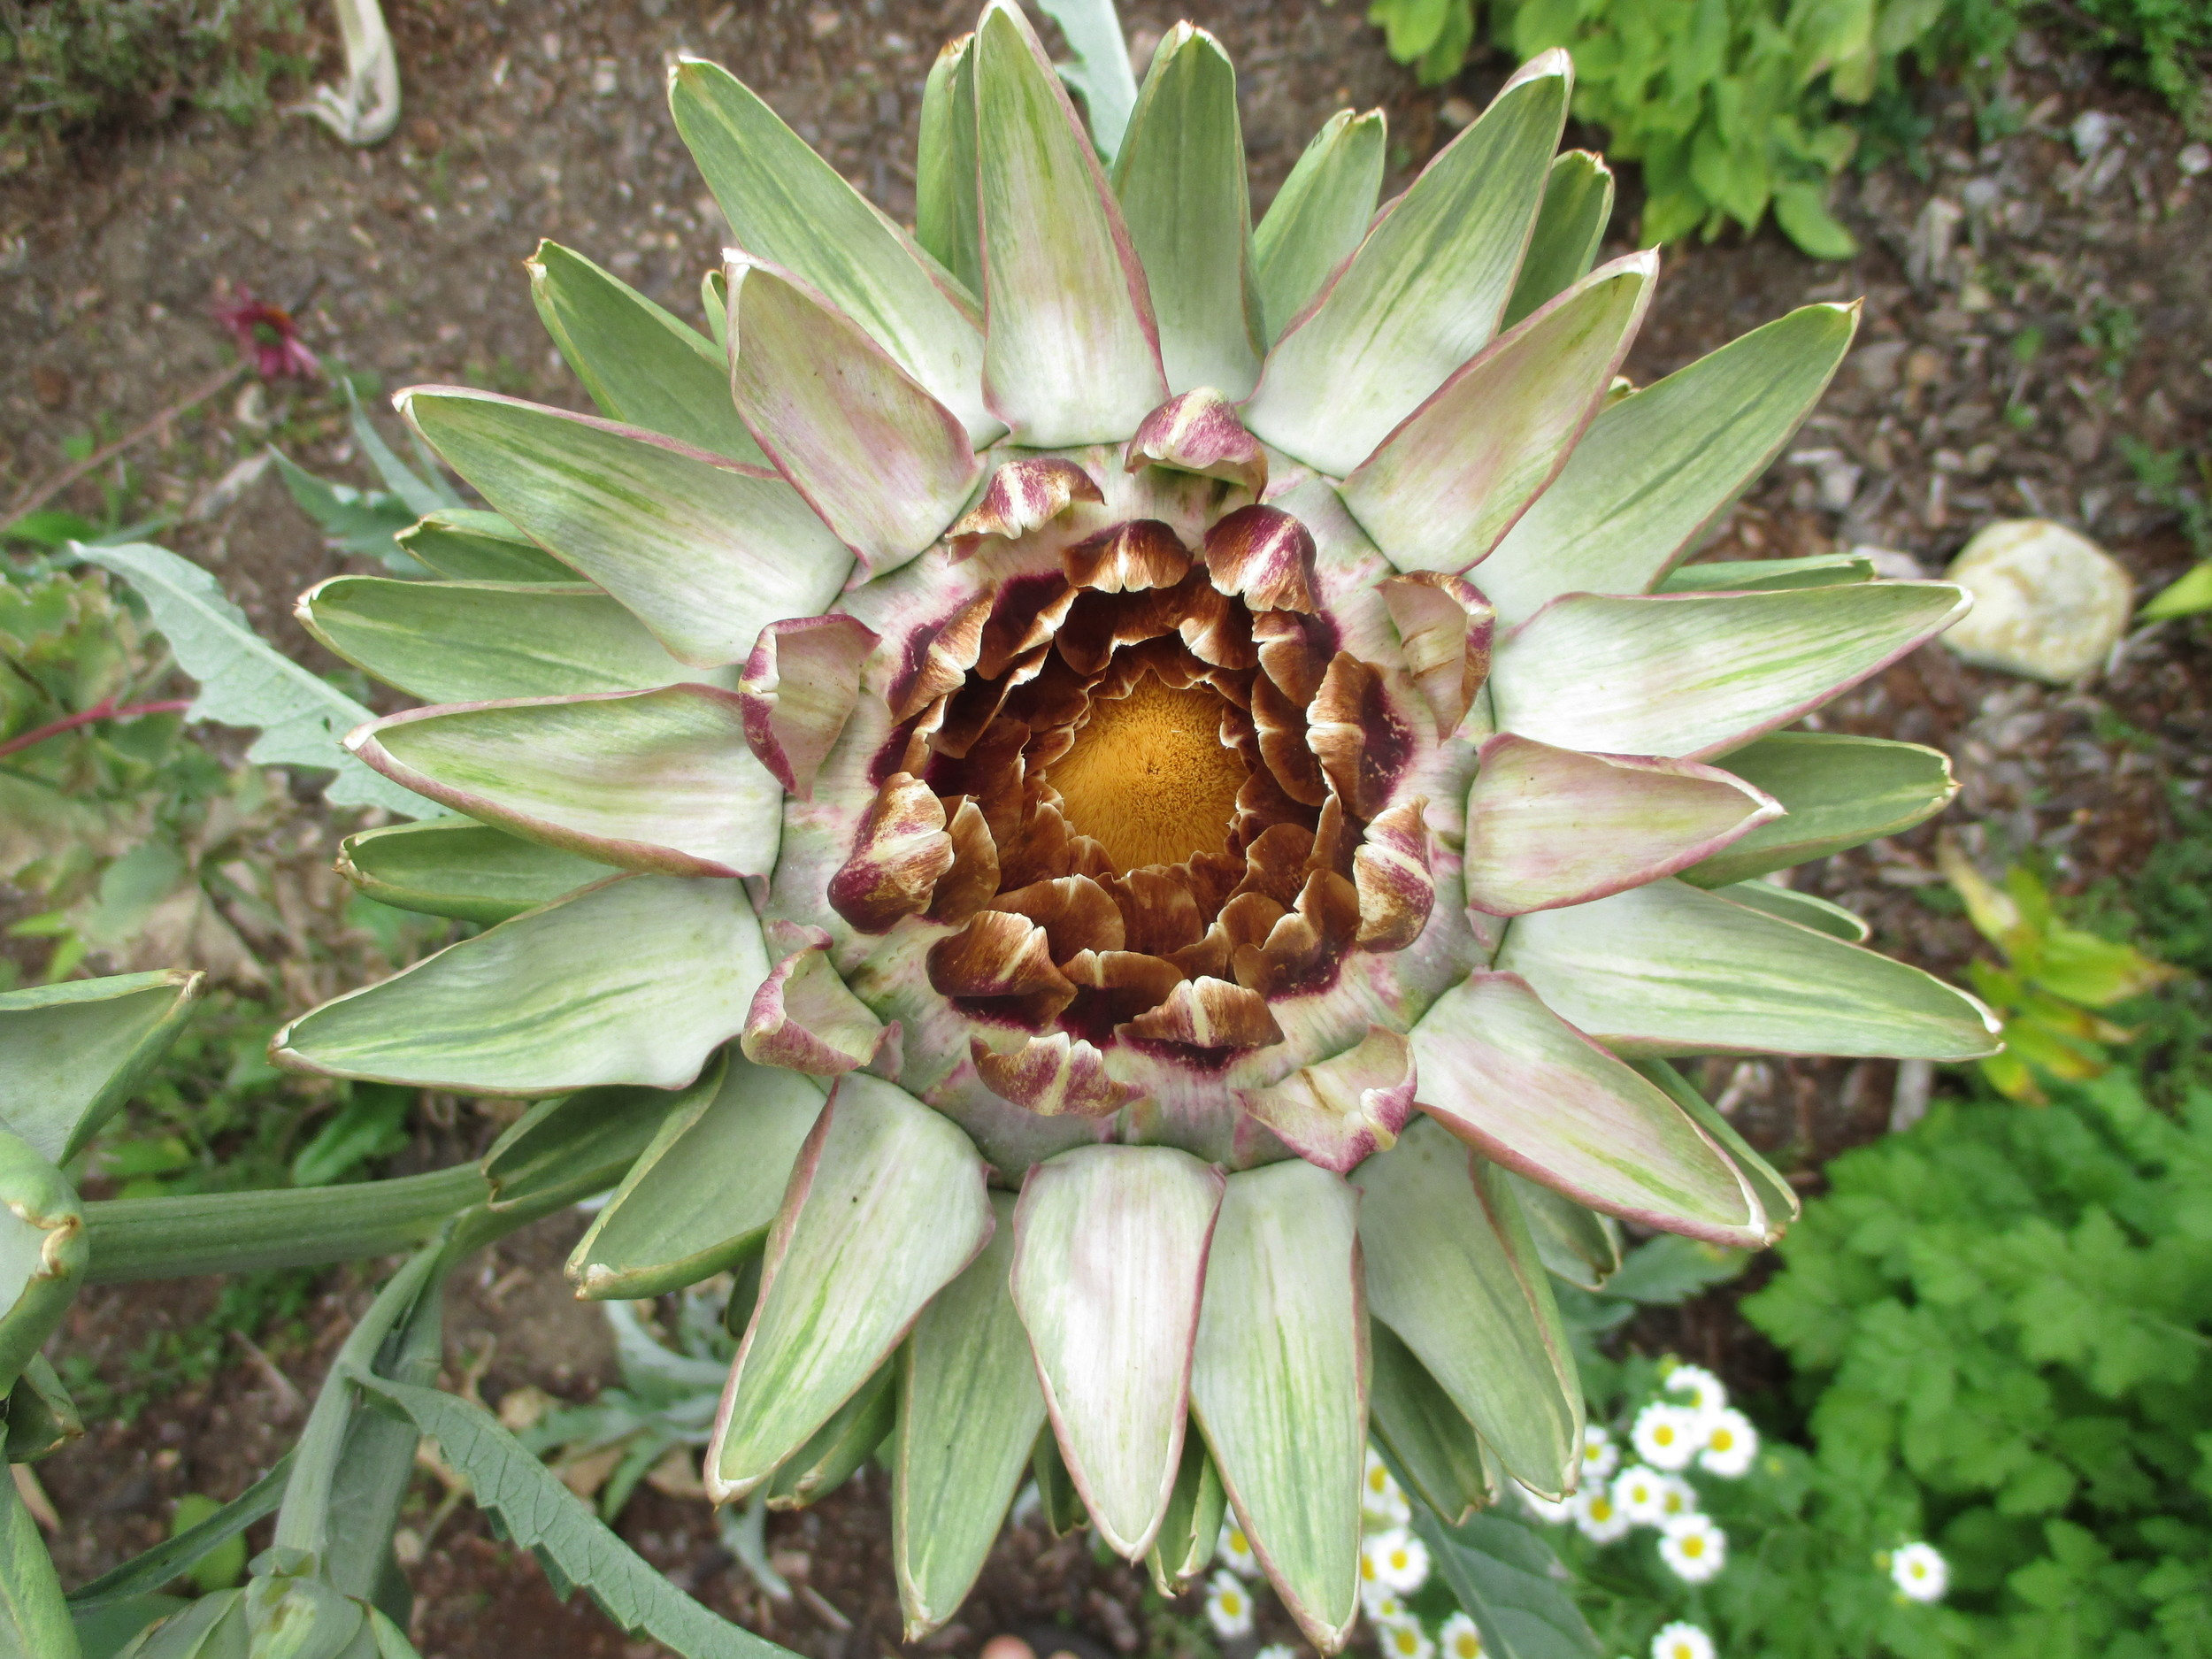 And yet another artichoke.